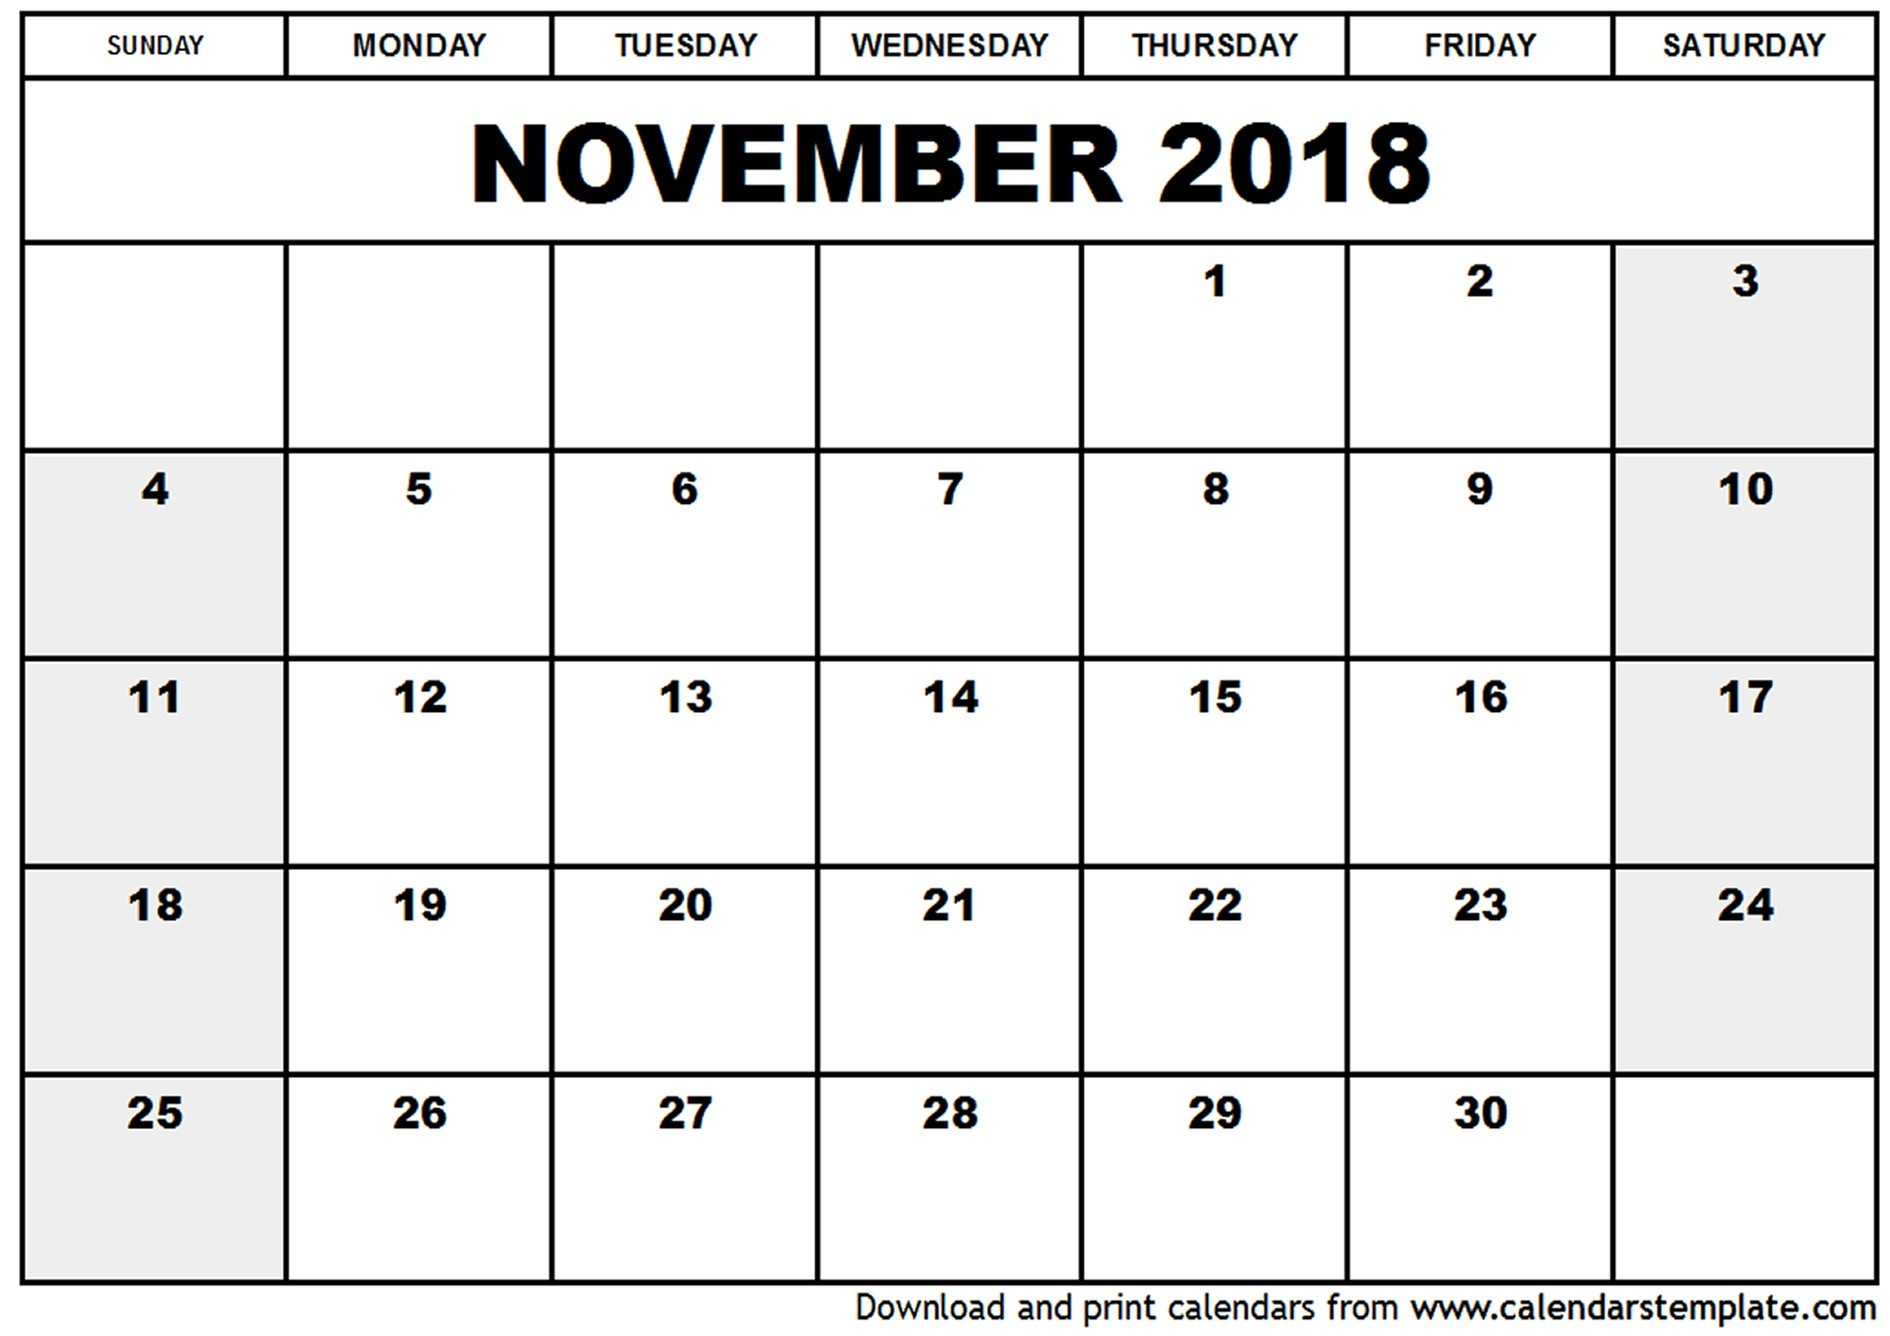 Kalender 2019 Pdf Free Download Más Recientemente Liberado Pretty November 2018 Calendar Of Kalender 2019 Pdf Free Download Más Populares Free Printable 2019 Calendar